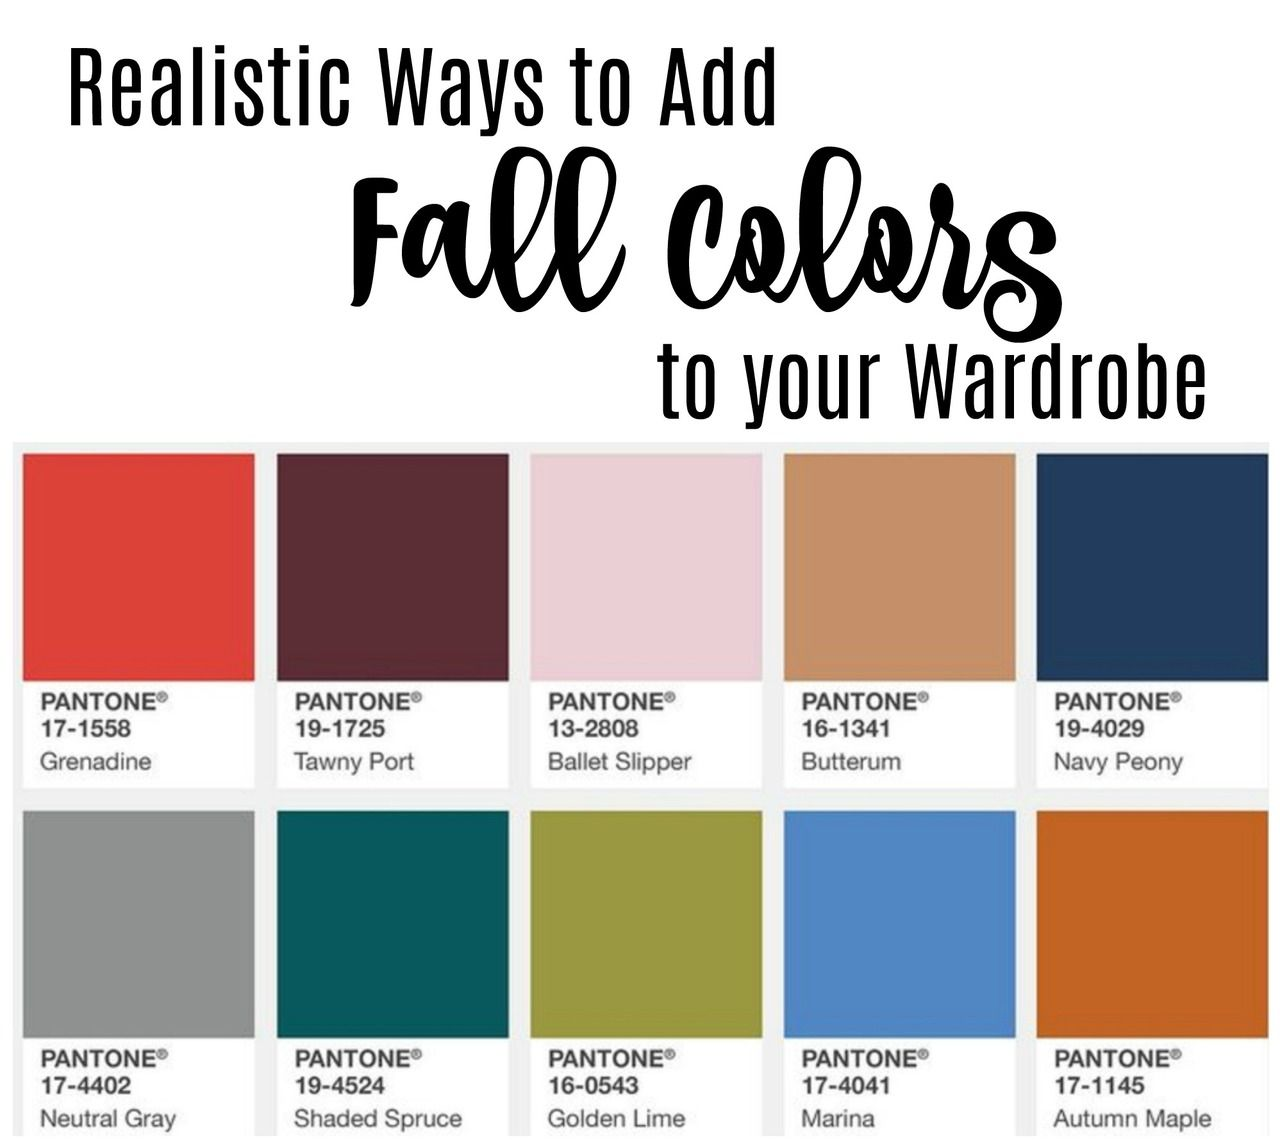 Realistic Ways To Add Fall Color Trends To Your Wardrobe  Pantone